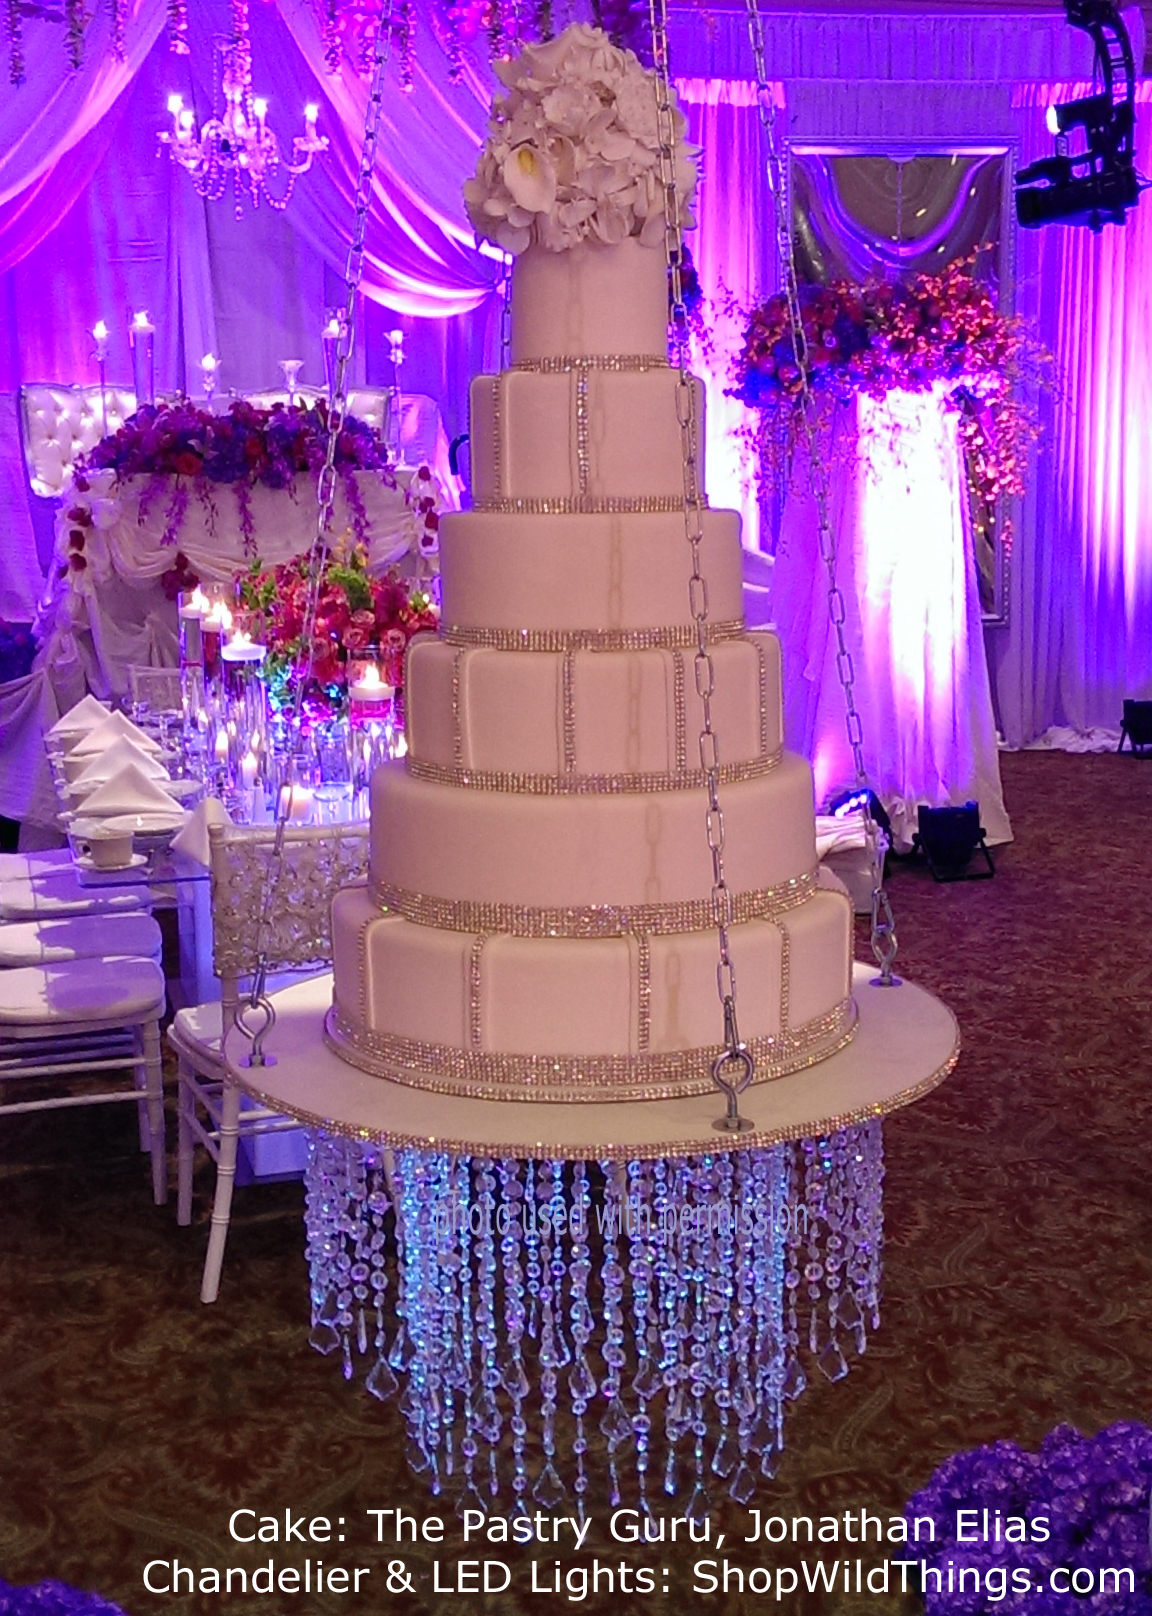 Hanging Wedding Cake - With a Chandelier Underneath!